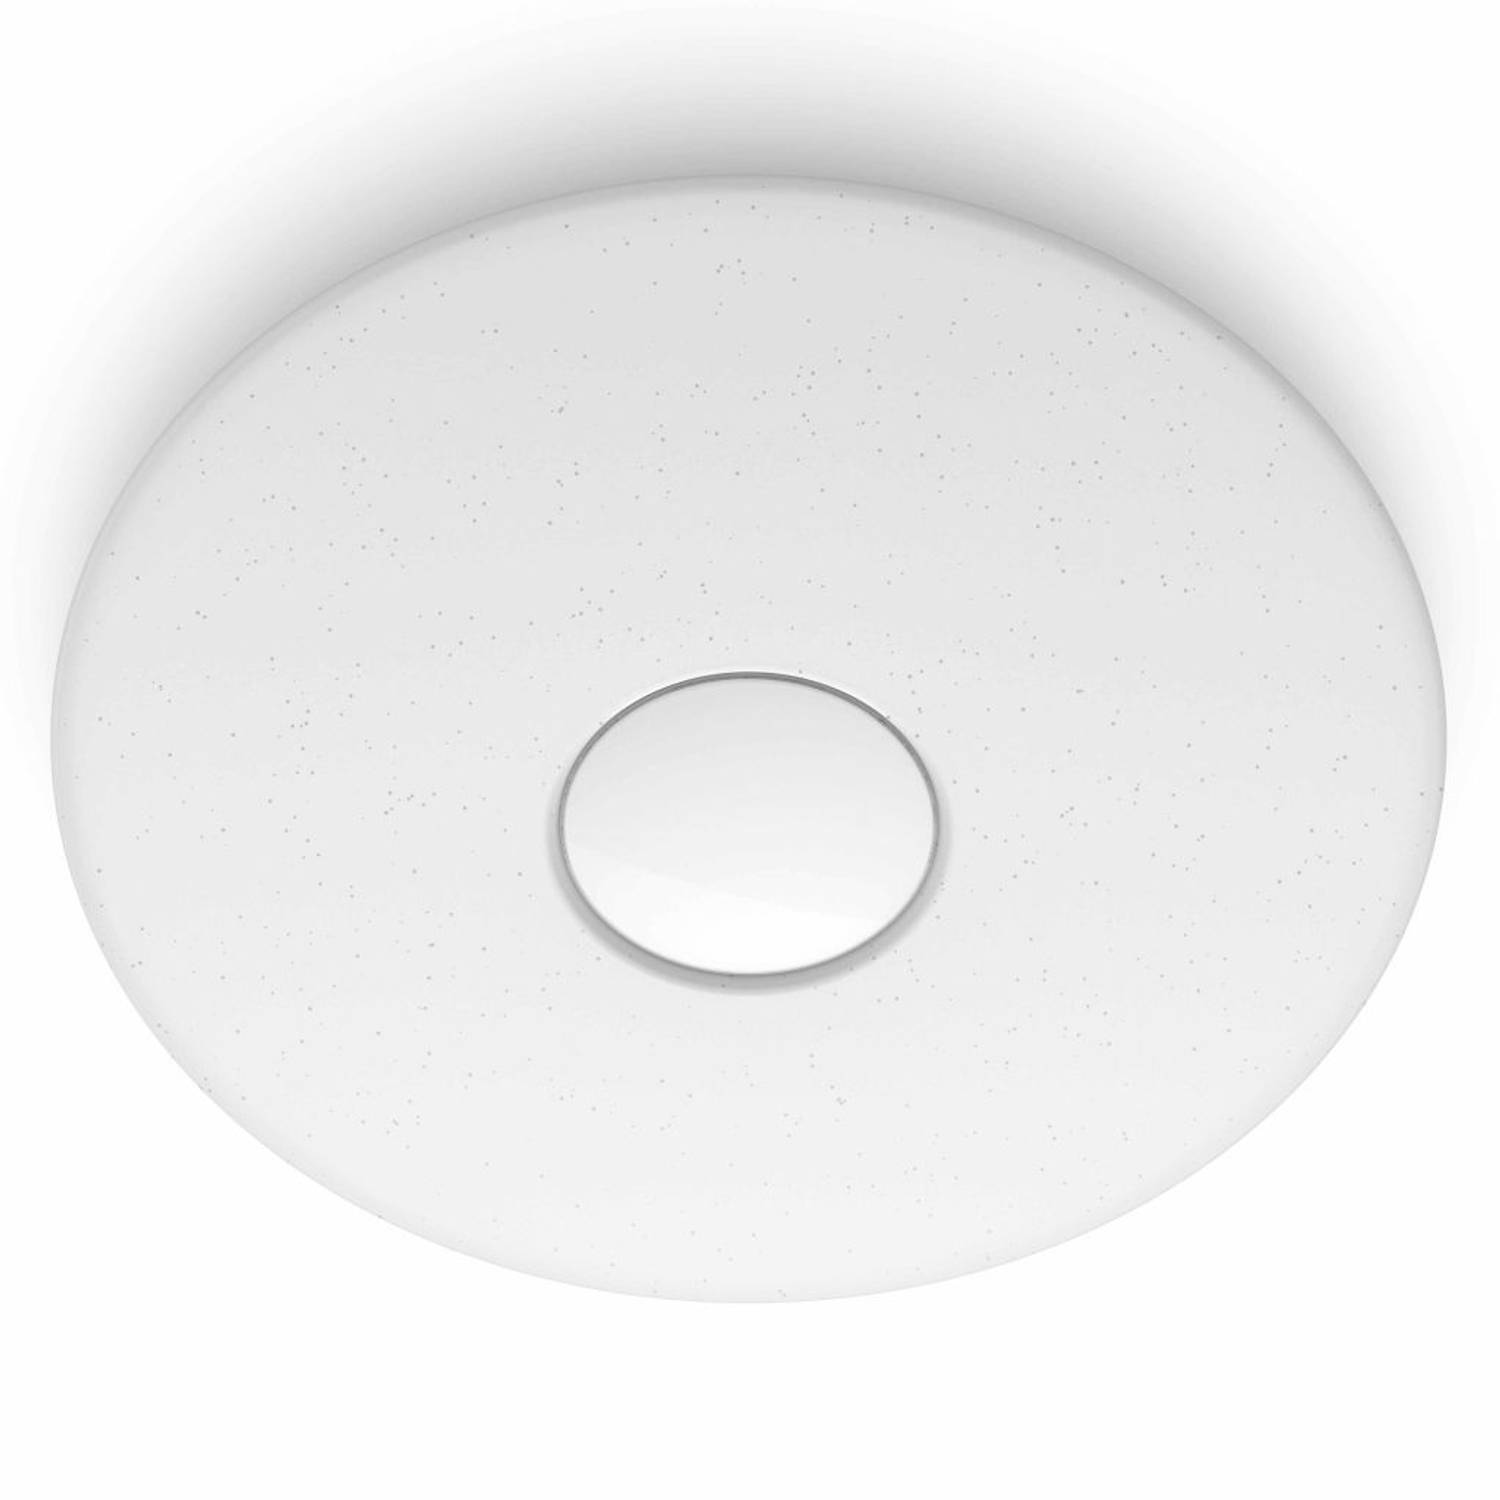 Philips LED-plafondlamp Haraz rond 30 W wit 6108331P5